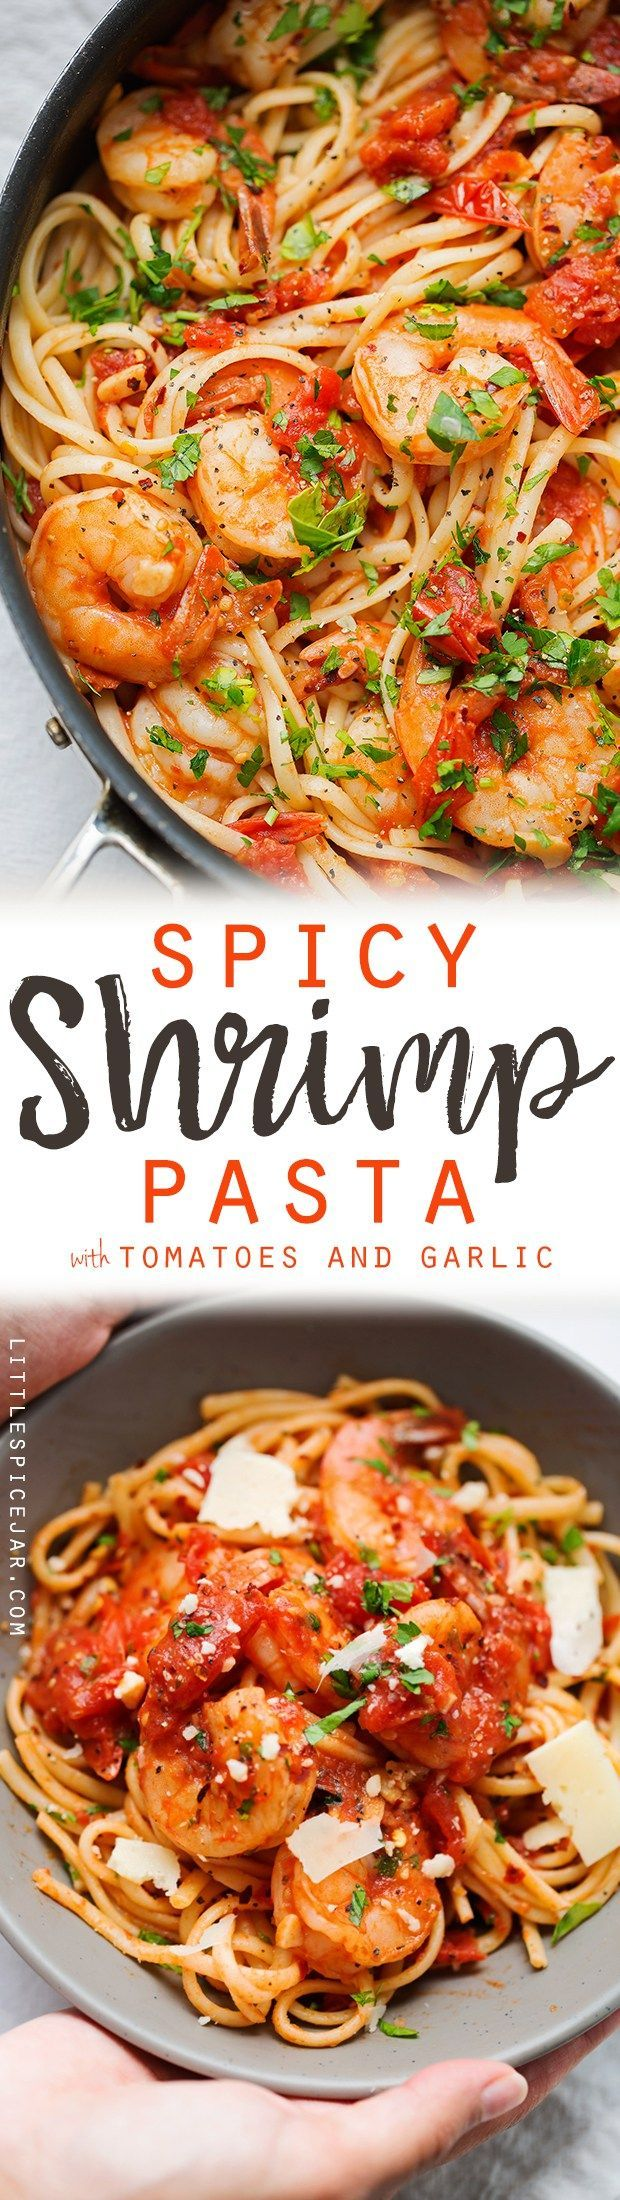 Spicy Shrimp Pasta with Tomatoes and Garlic - A simple pasta dinner with tons of fresh, summery tomatoes and lots of garlic! | Littlespicejar.com